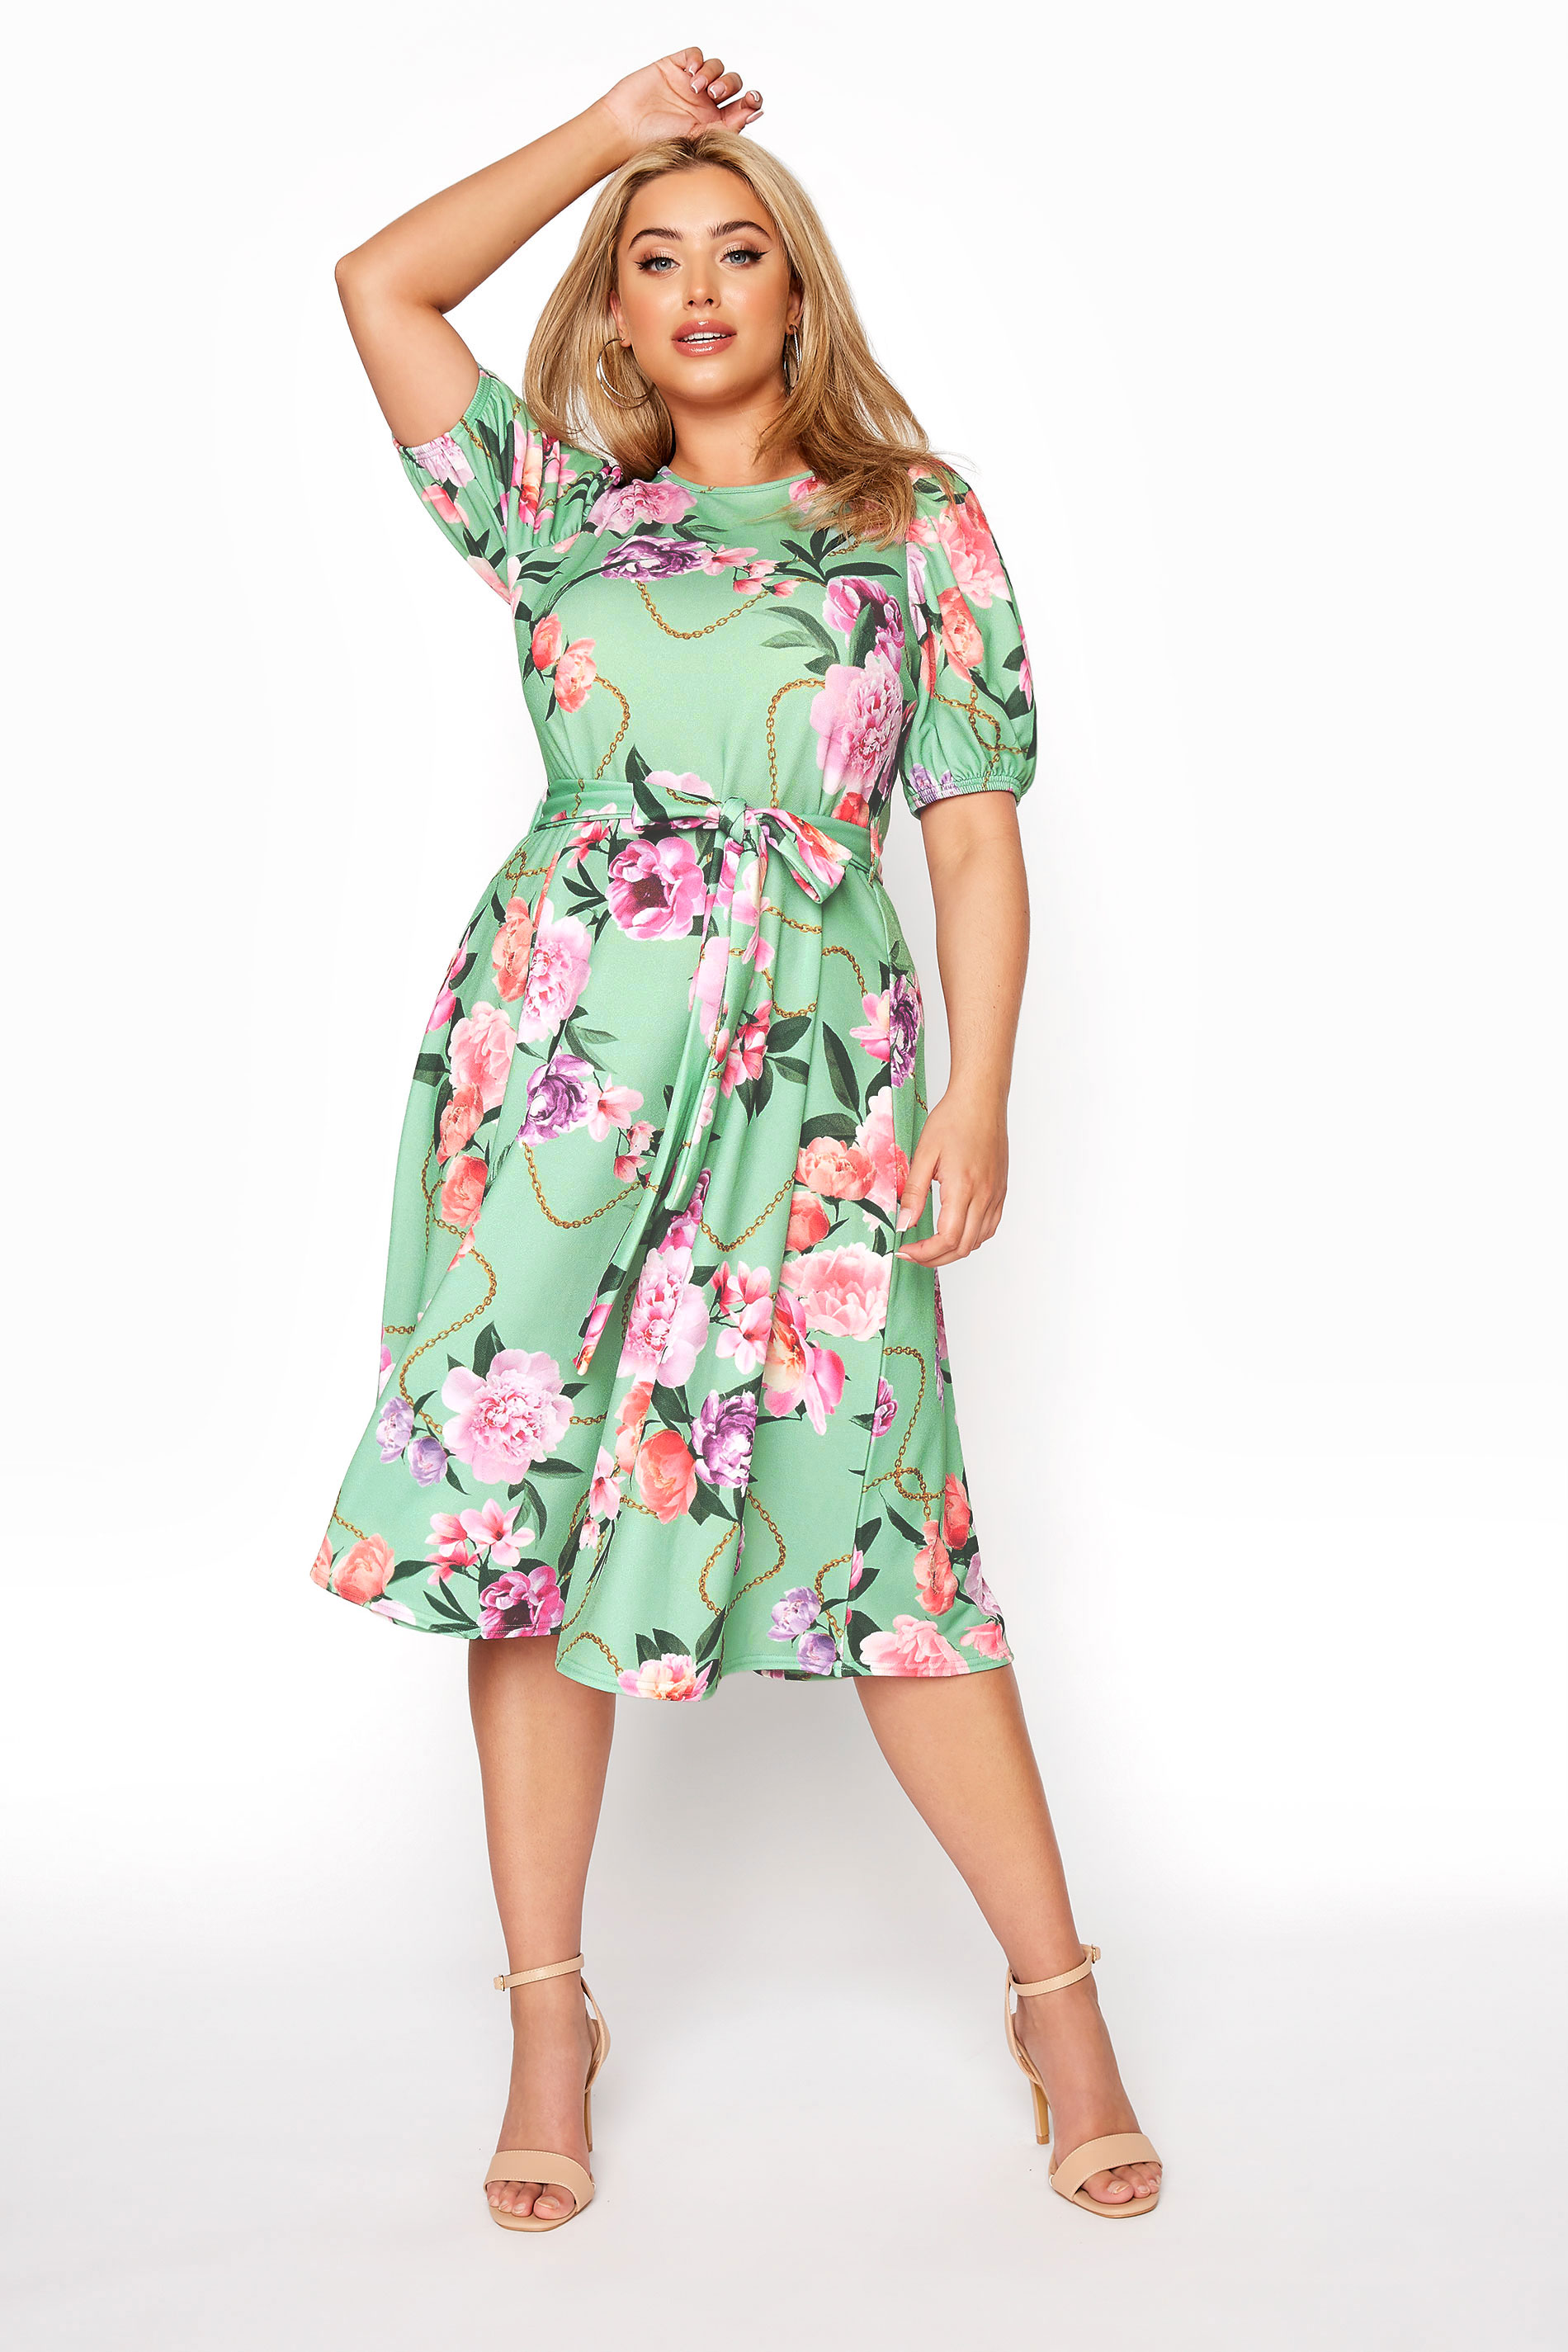 YOURS LONDON Green Floral Chain Print Puff Sleeve Skater Dress_A.jpg